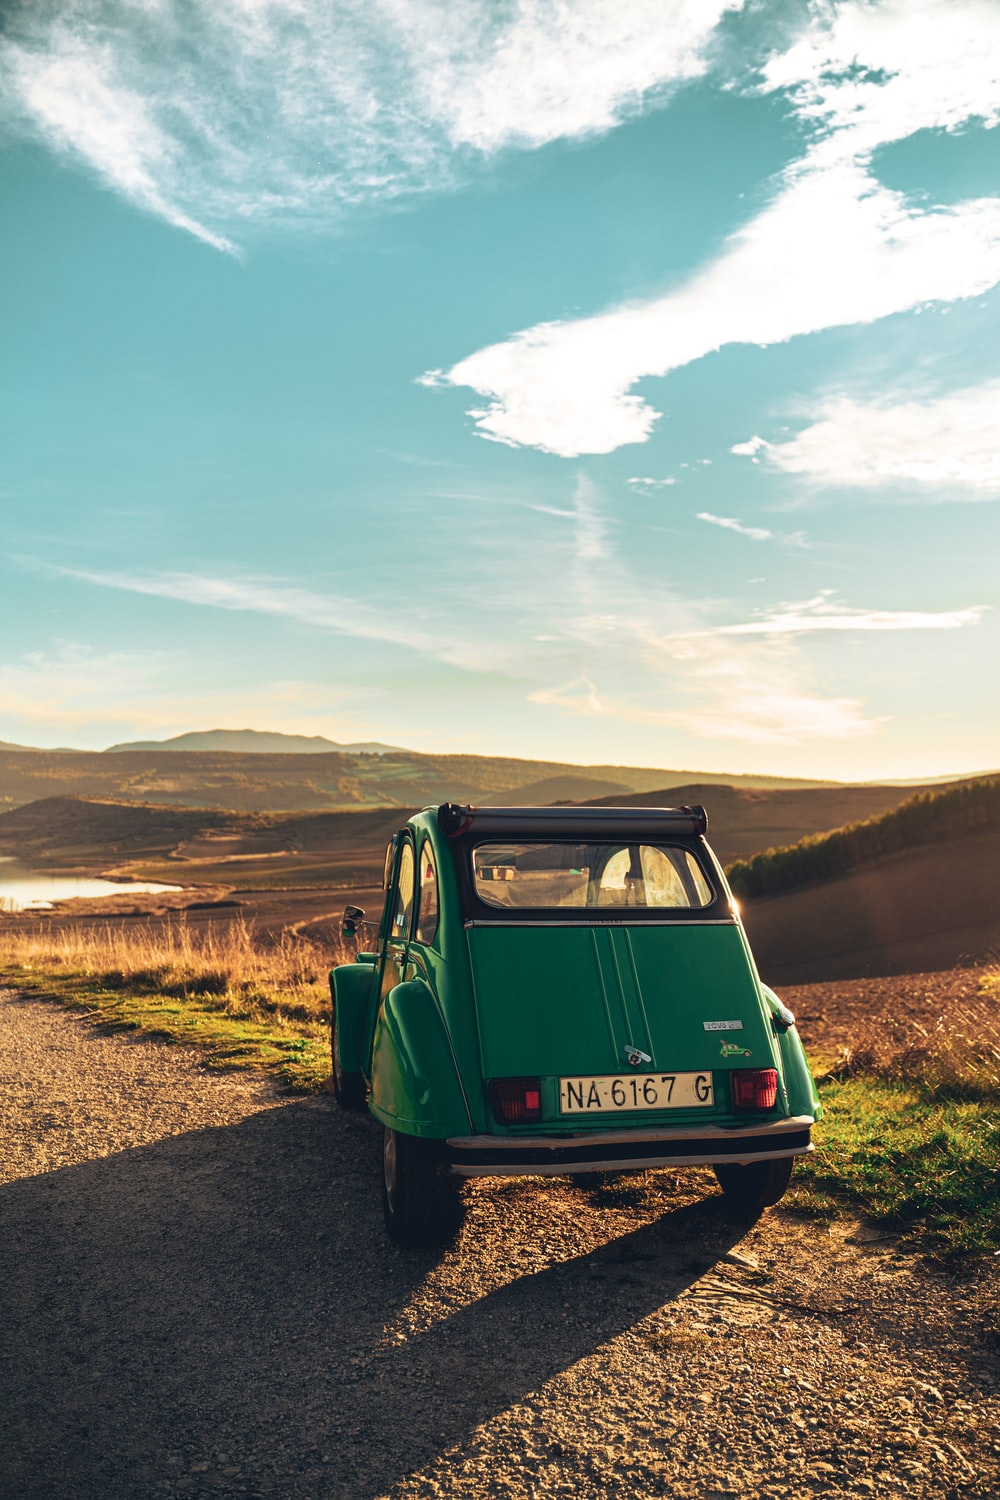 green volkswagen t-1 on dirt road during daytime